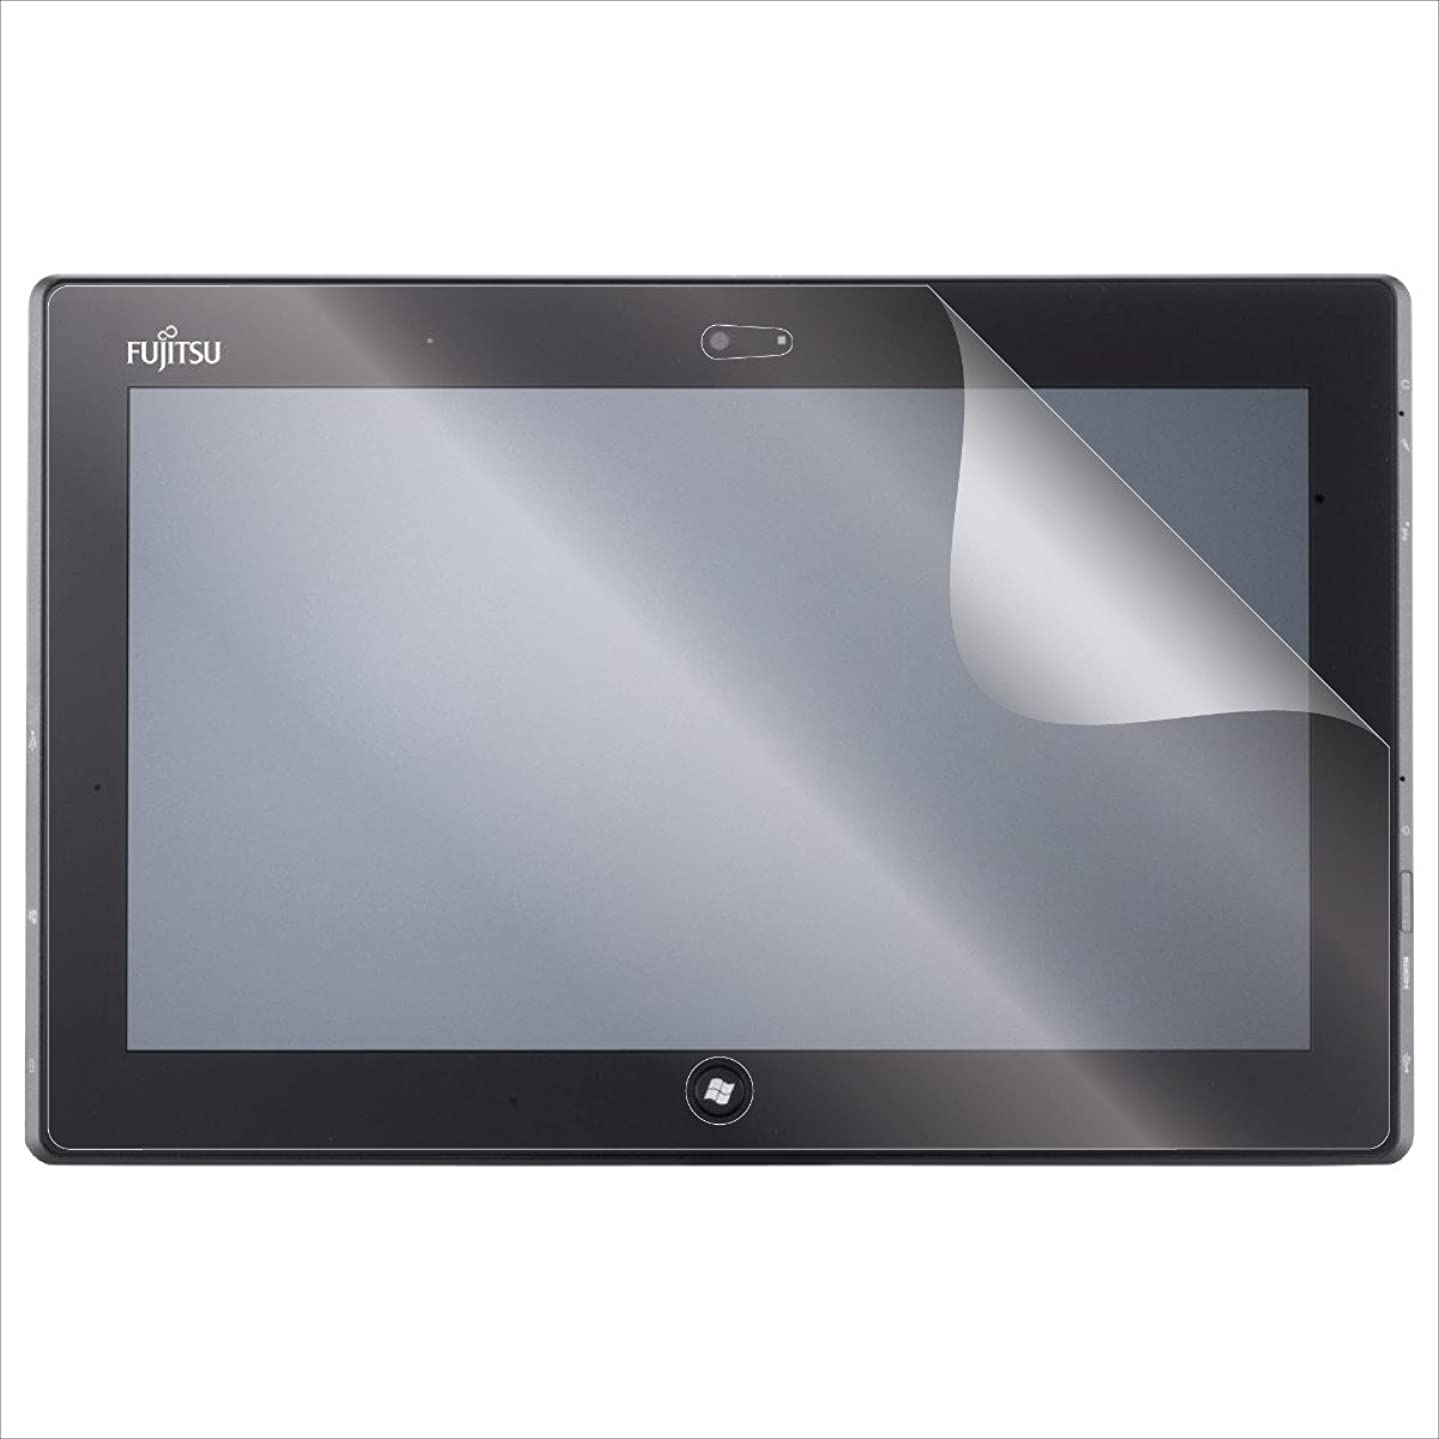 (2-Pack) StealthShields Screen Protector for Fujitsu Stylistic Q702 (Ultra Clear)